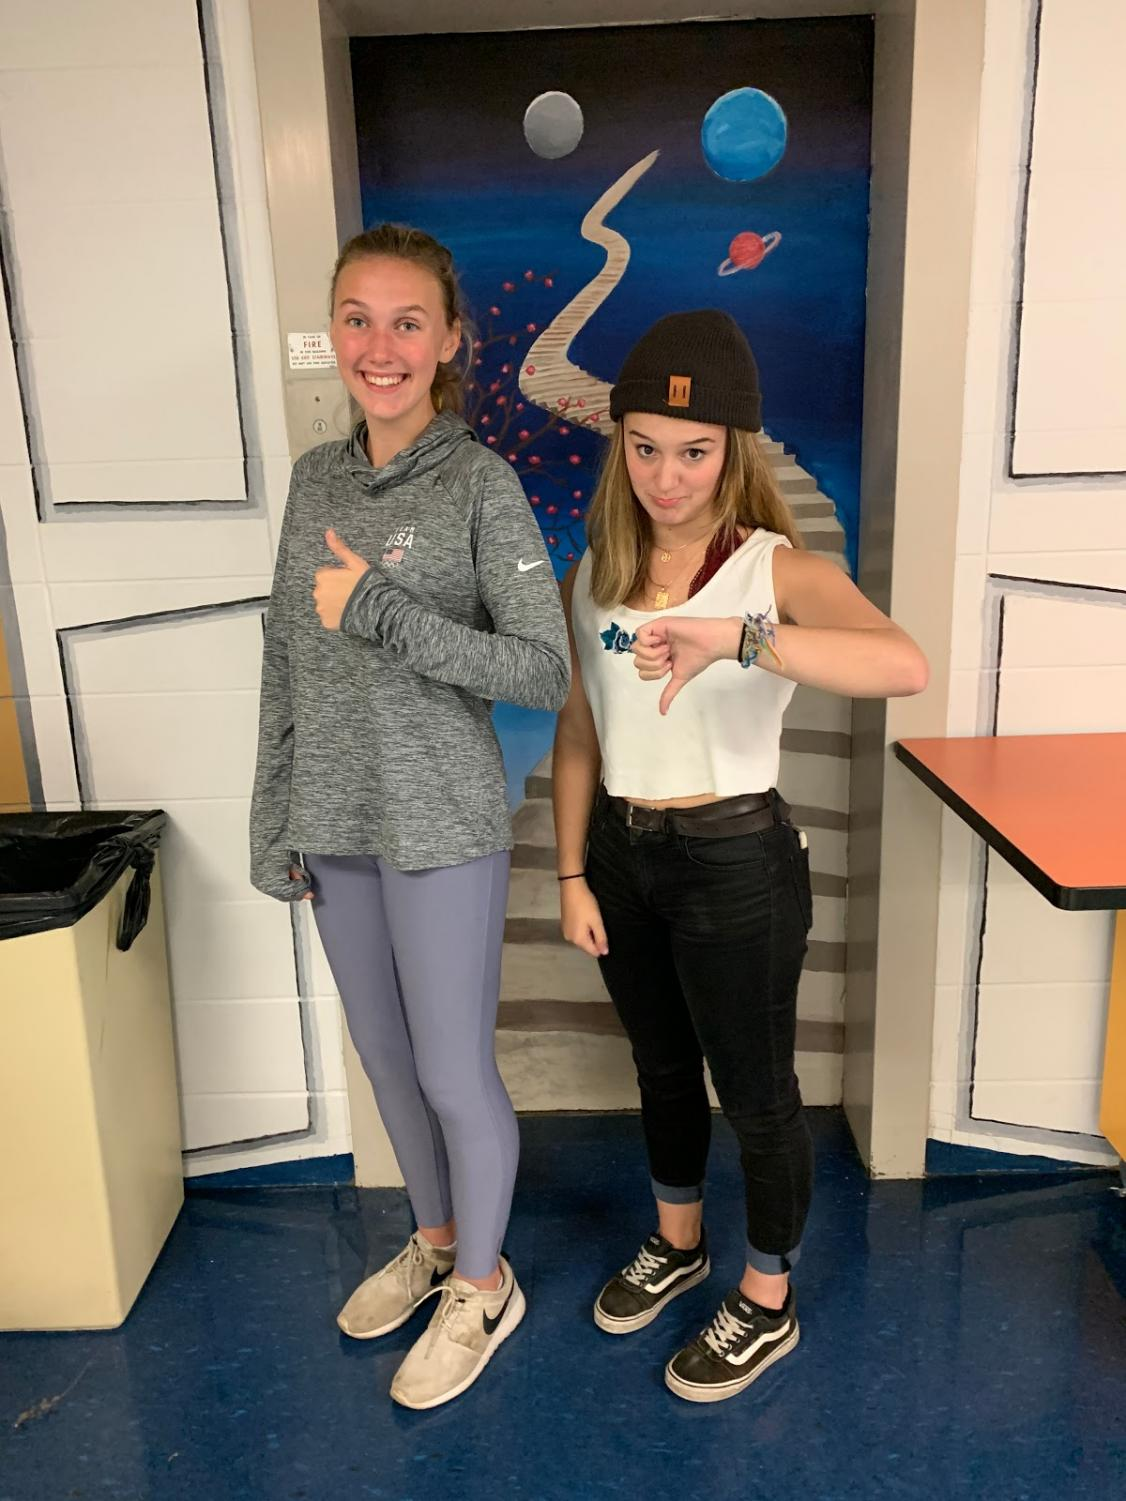 Triton High School Seniors Paige Volpone and Amanda Ouellette showing the difference between an appropriate outfit and not appropriate outfit. Photo courtesy of Cameren Jolivet